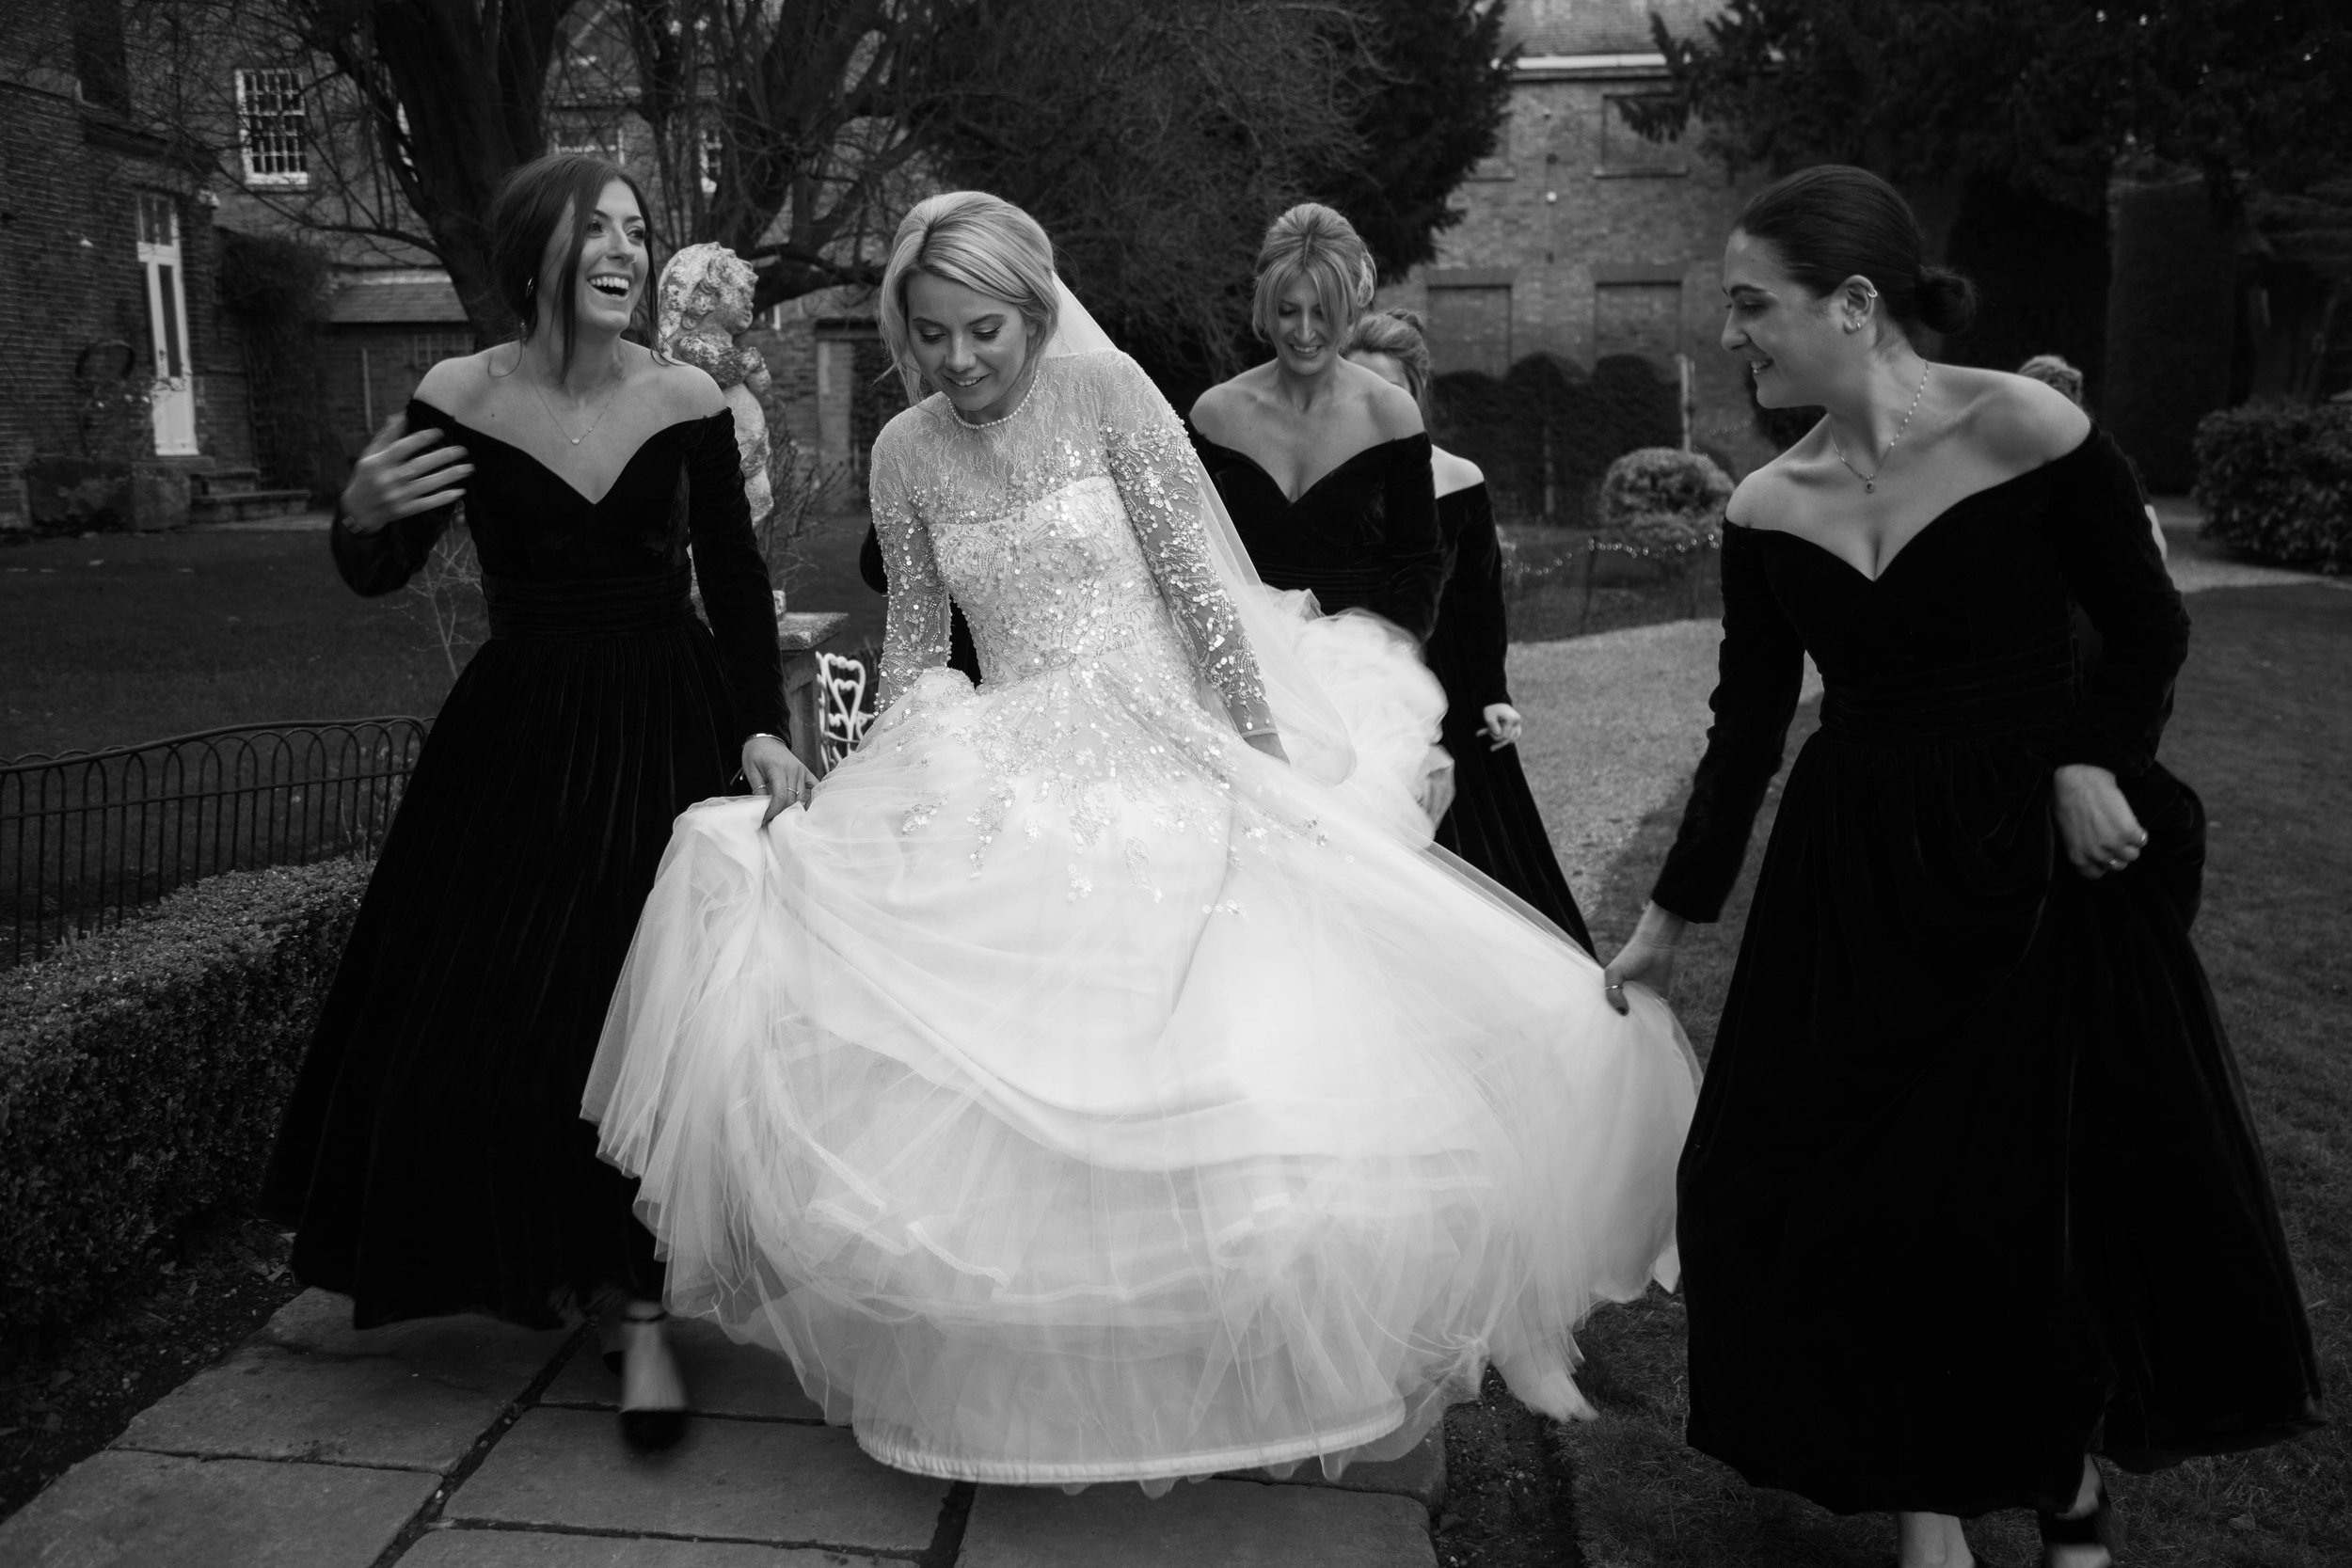 A Glamorous Jenny Packham Wedding Gown For A Romantic Winter Wedding At Norwood House 11.jpg